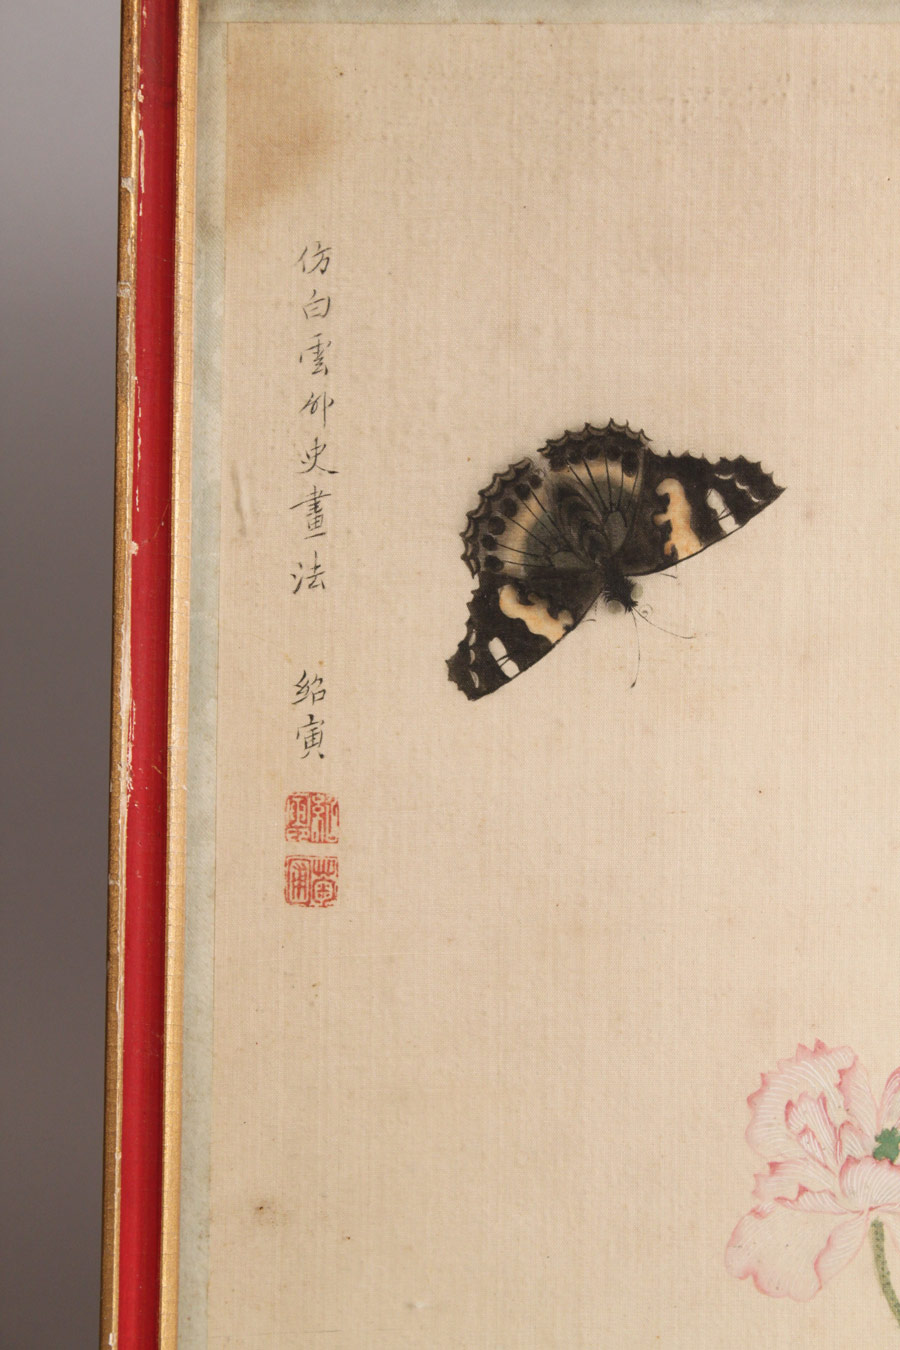 Lot 553 Japanese Silk Embroidery Of Cat 2 Woodblock Prin